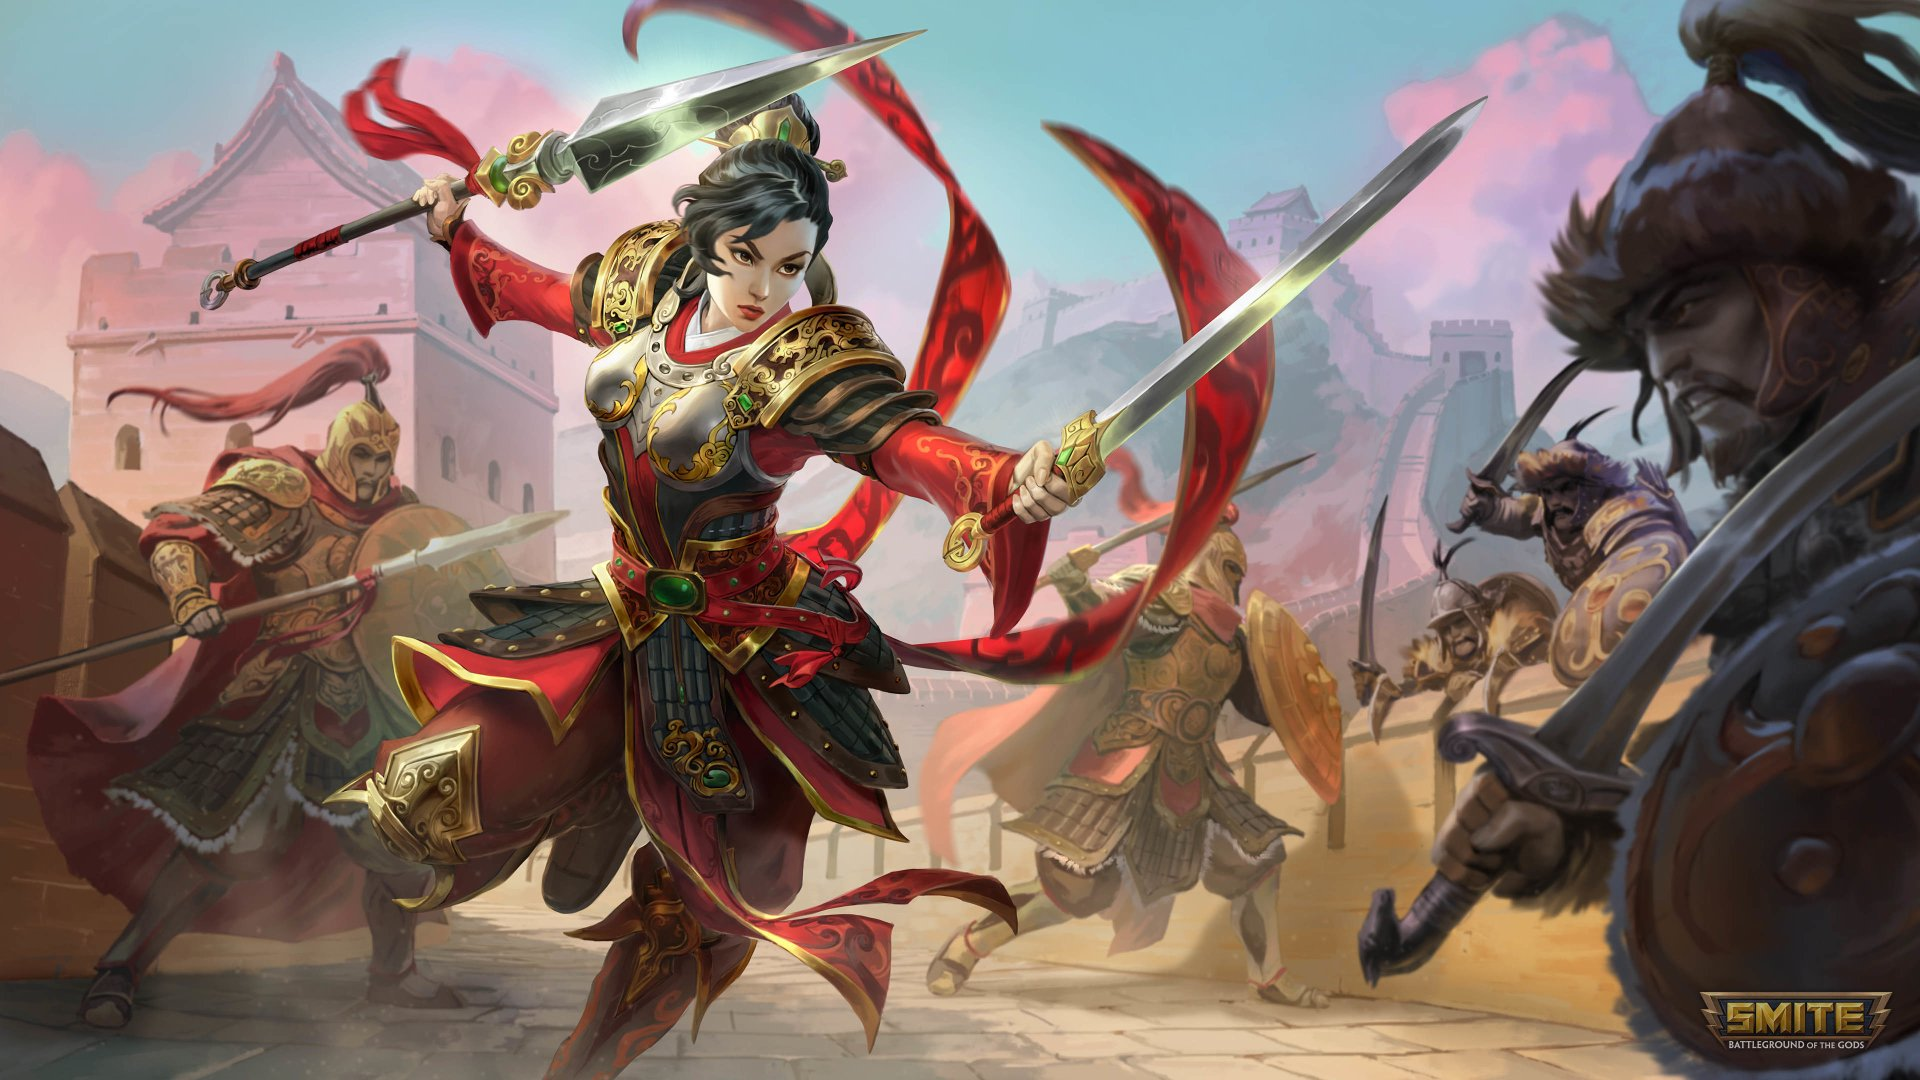 5 Mulan Smite Hd Wallpapers Background Images Wallpaper Abyss